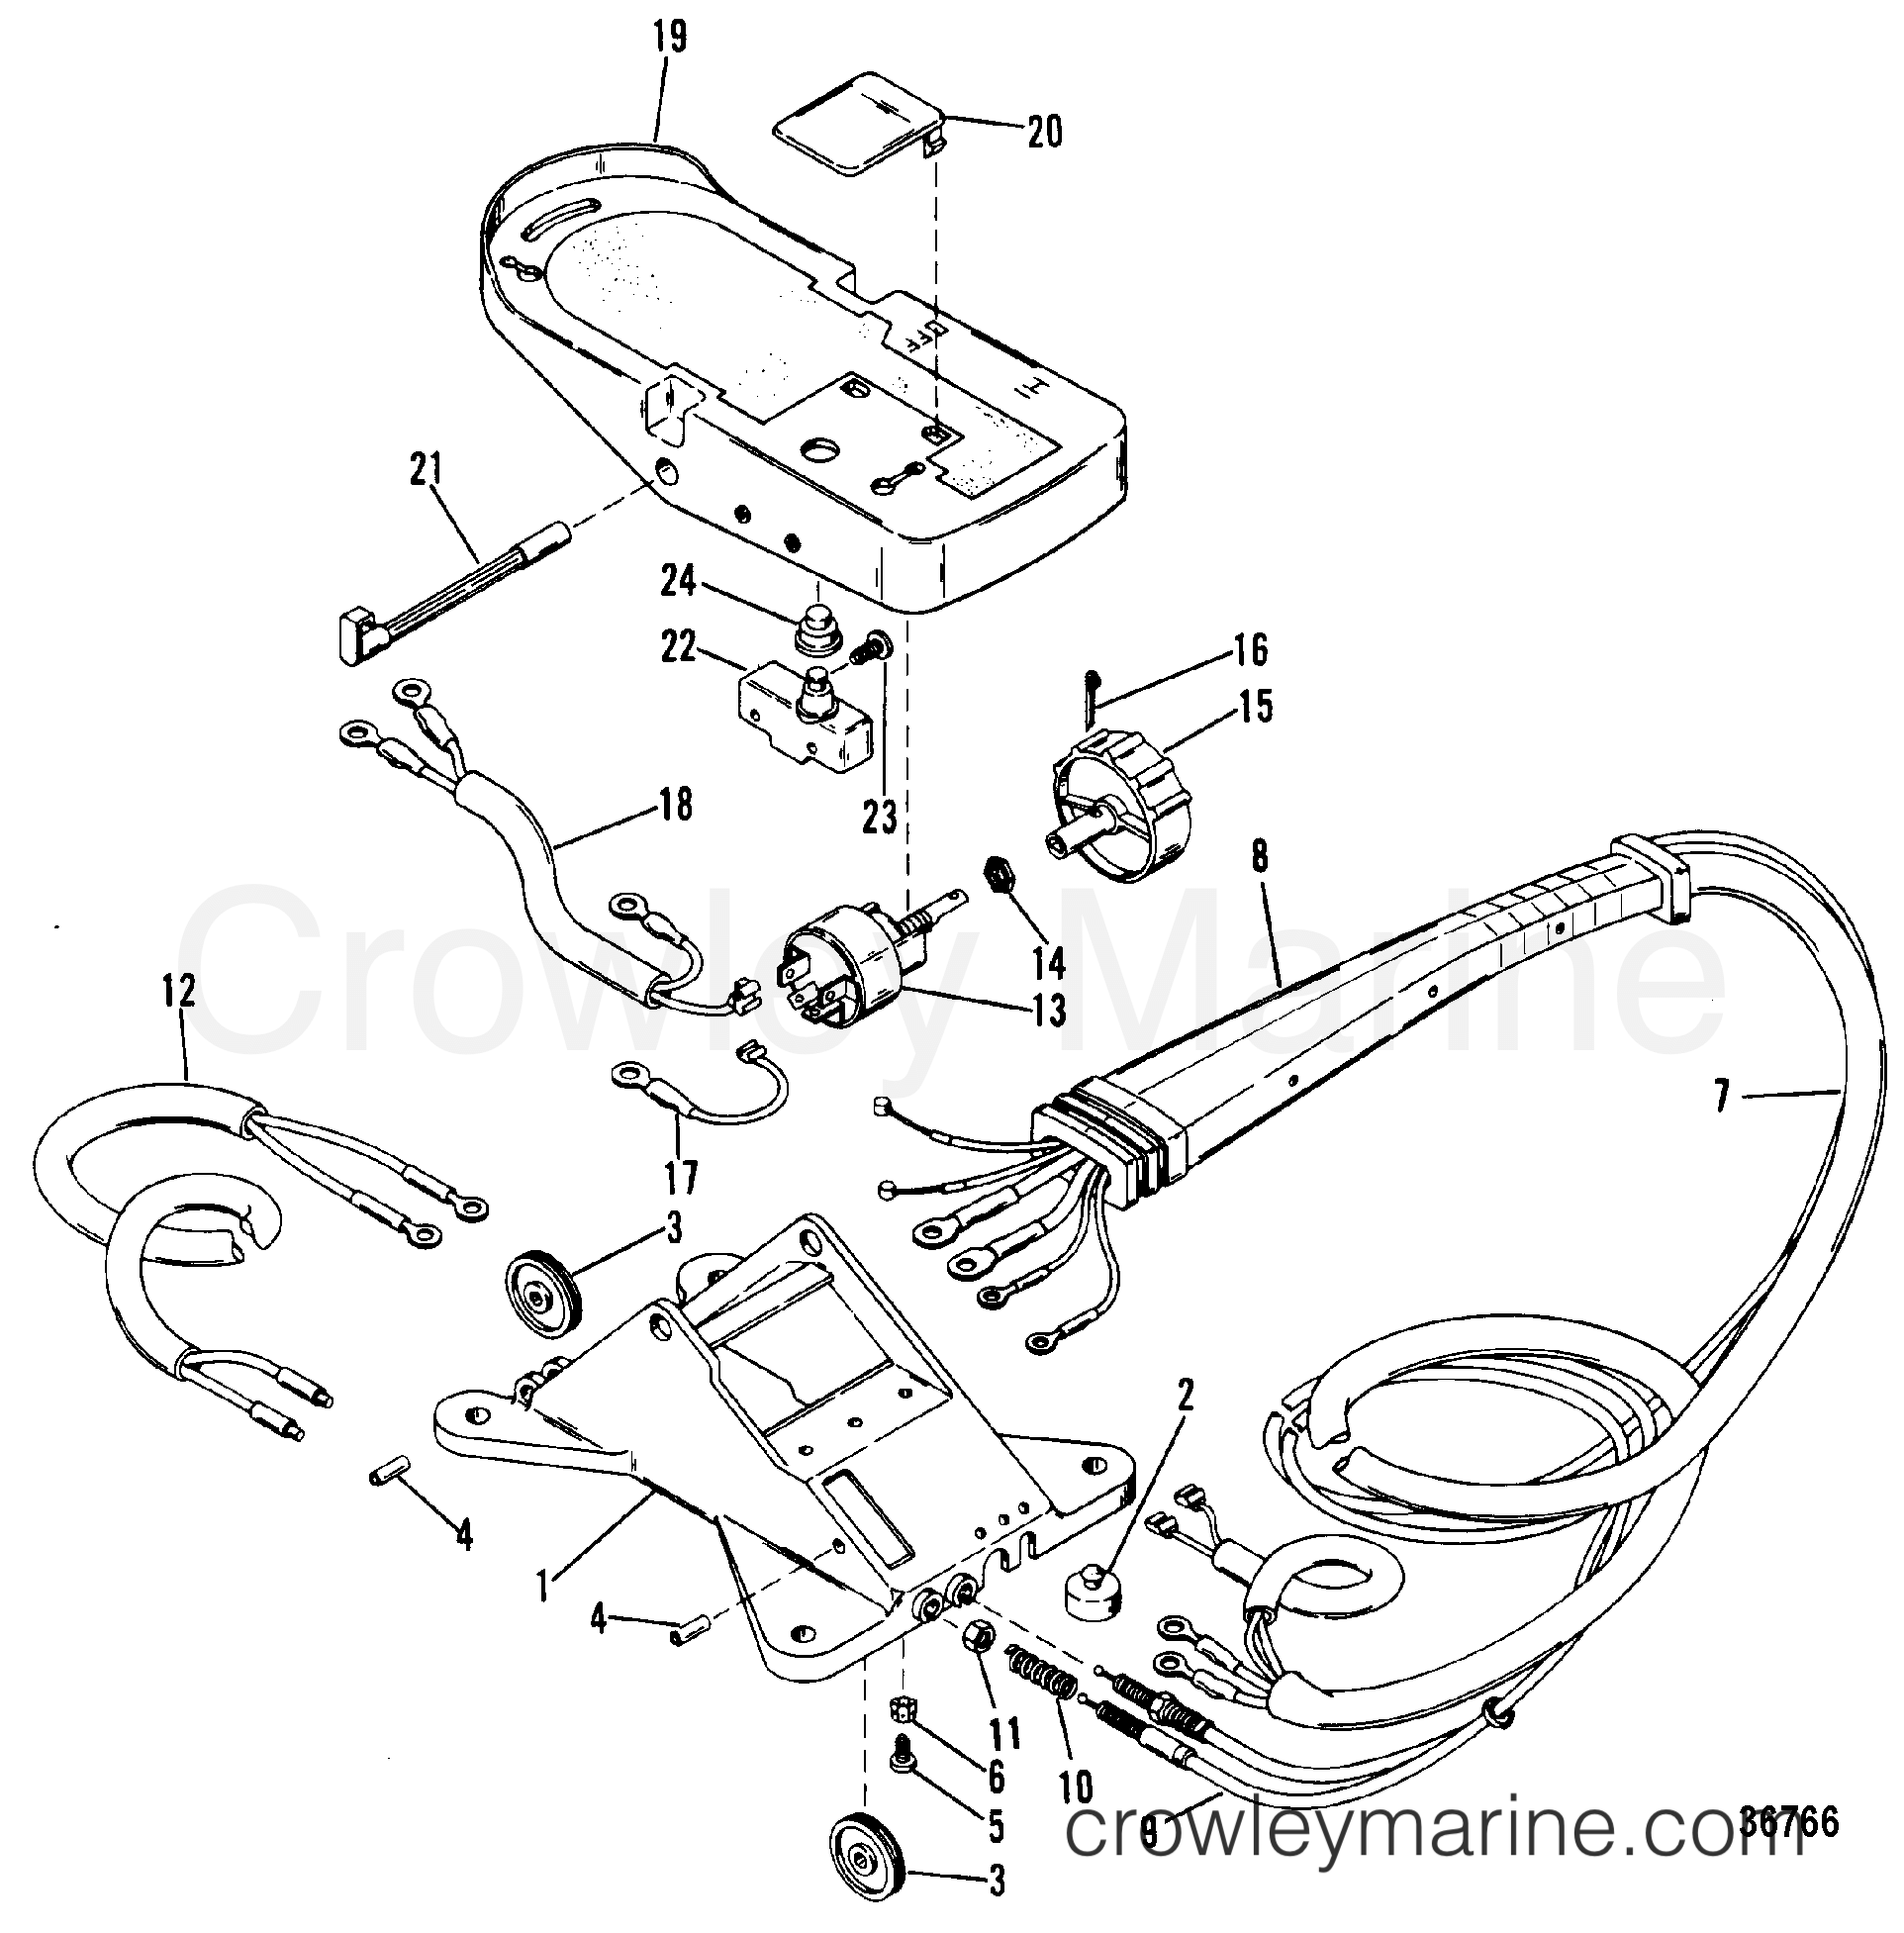 1984 Mariner Outboard 222 [R] - 7001904 - WIRING HARNESS AND FOOT PLATE(